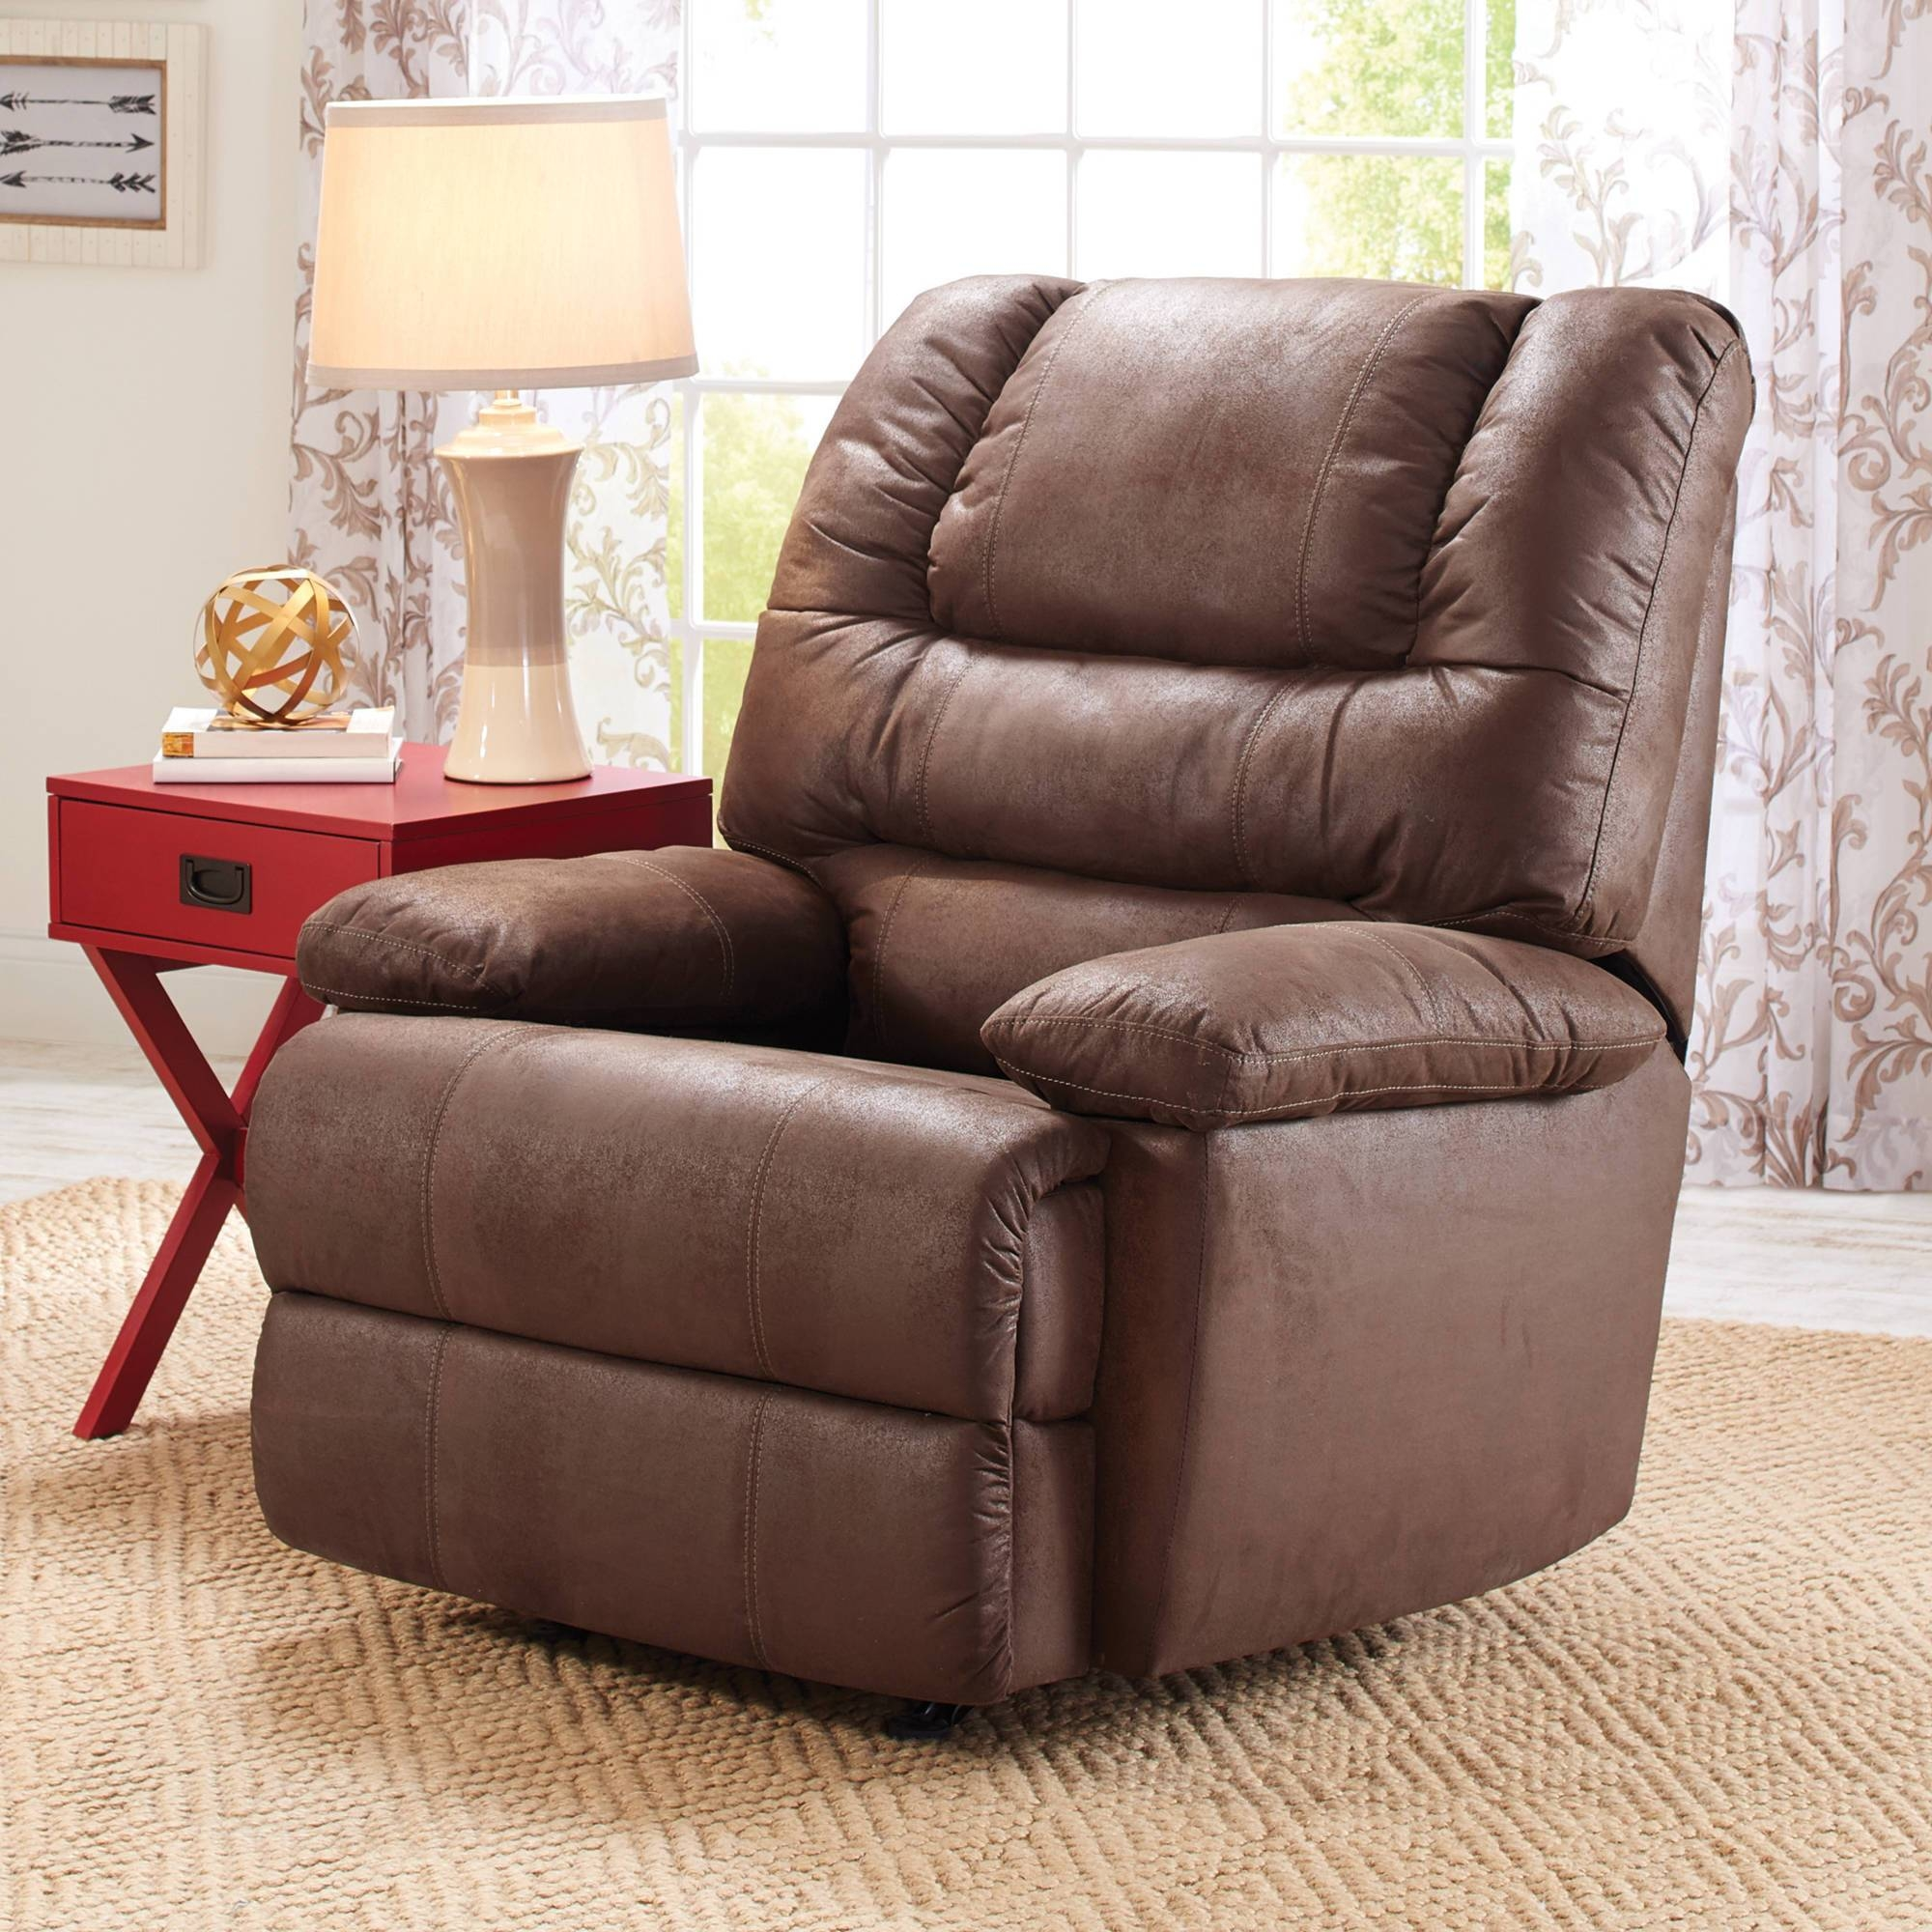 Charming Reclining Sofa Chair 1675 62Ph 361 54 for Sofa Chair Recliner (Image 5 of 30)